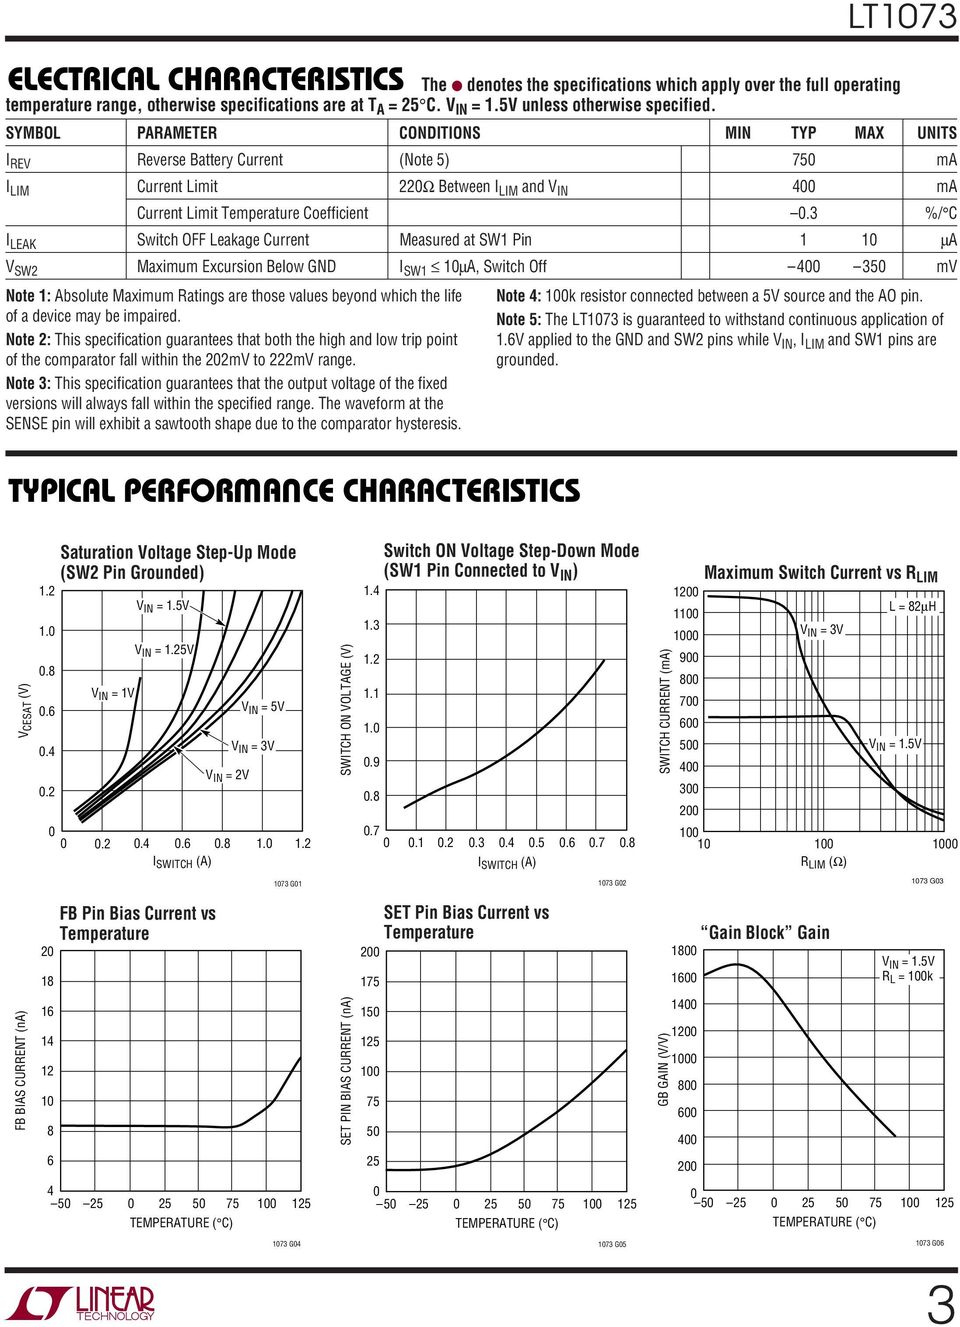 3 %/ C I LEAK Switch OFF Leakage Current Measured at Pin 1 10 µa V Maximum Excursion Below I 10µA, Switch Off 400 350 mv Note 1: Absolute Maximum Ratings are those values beyond which the life of a